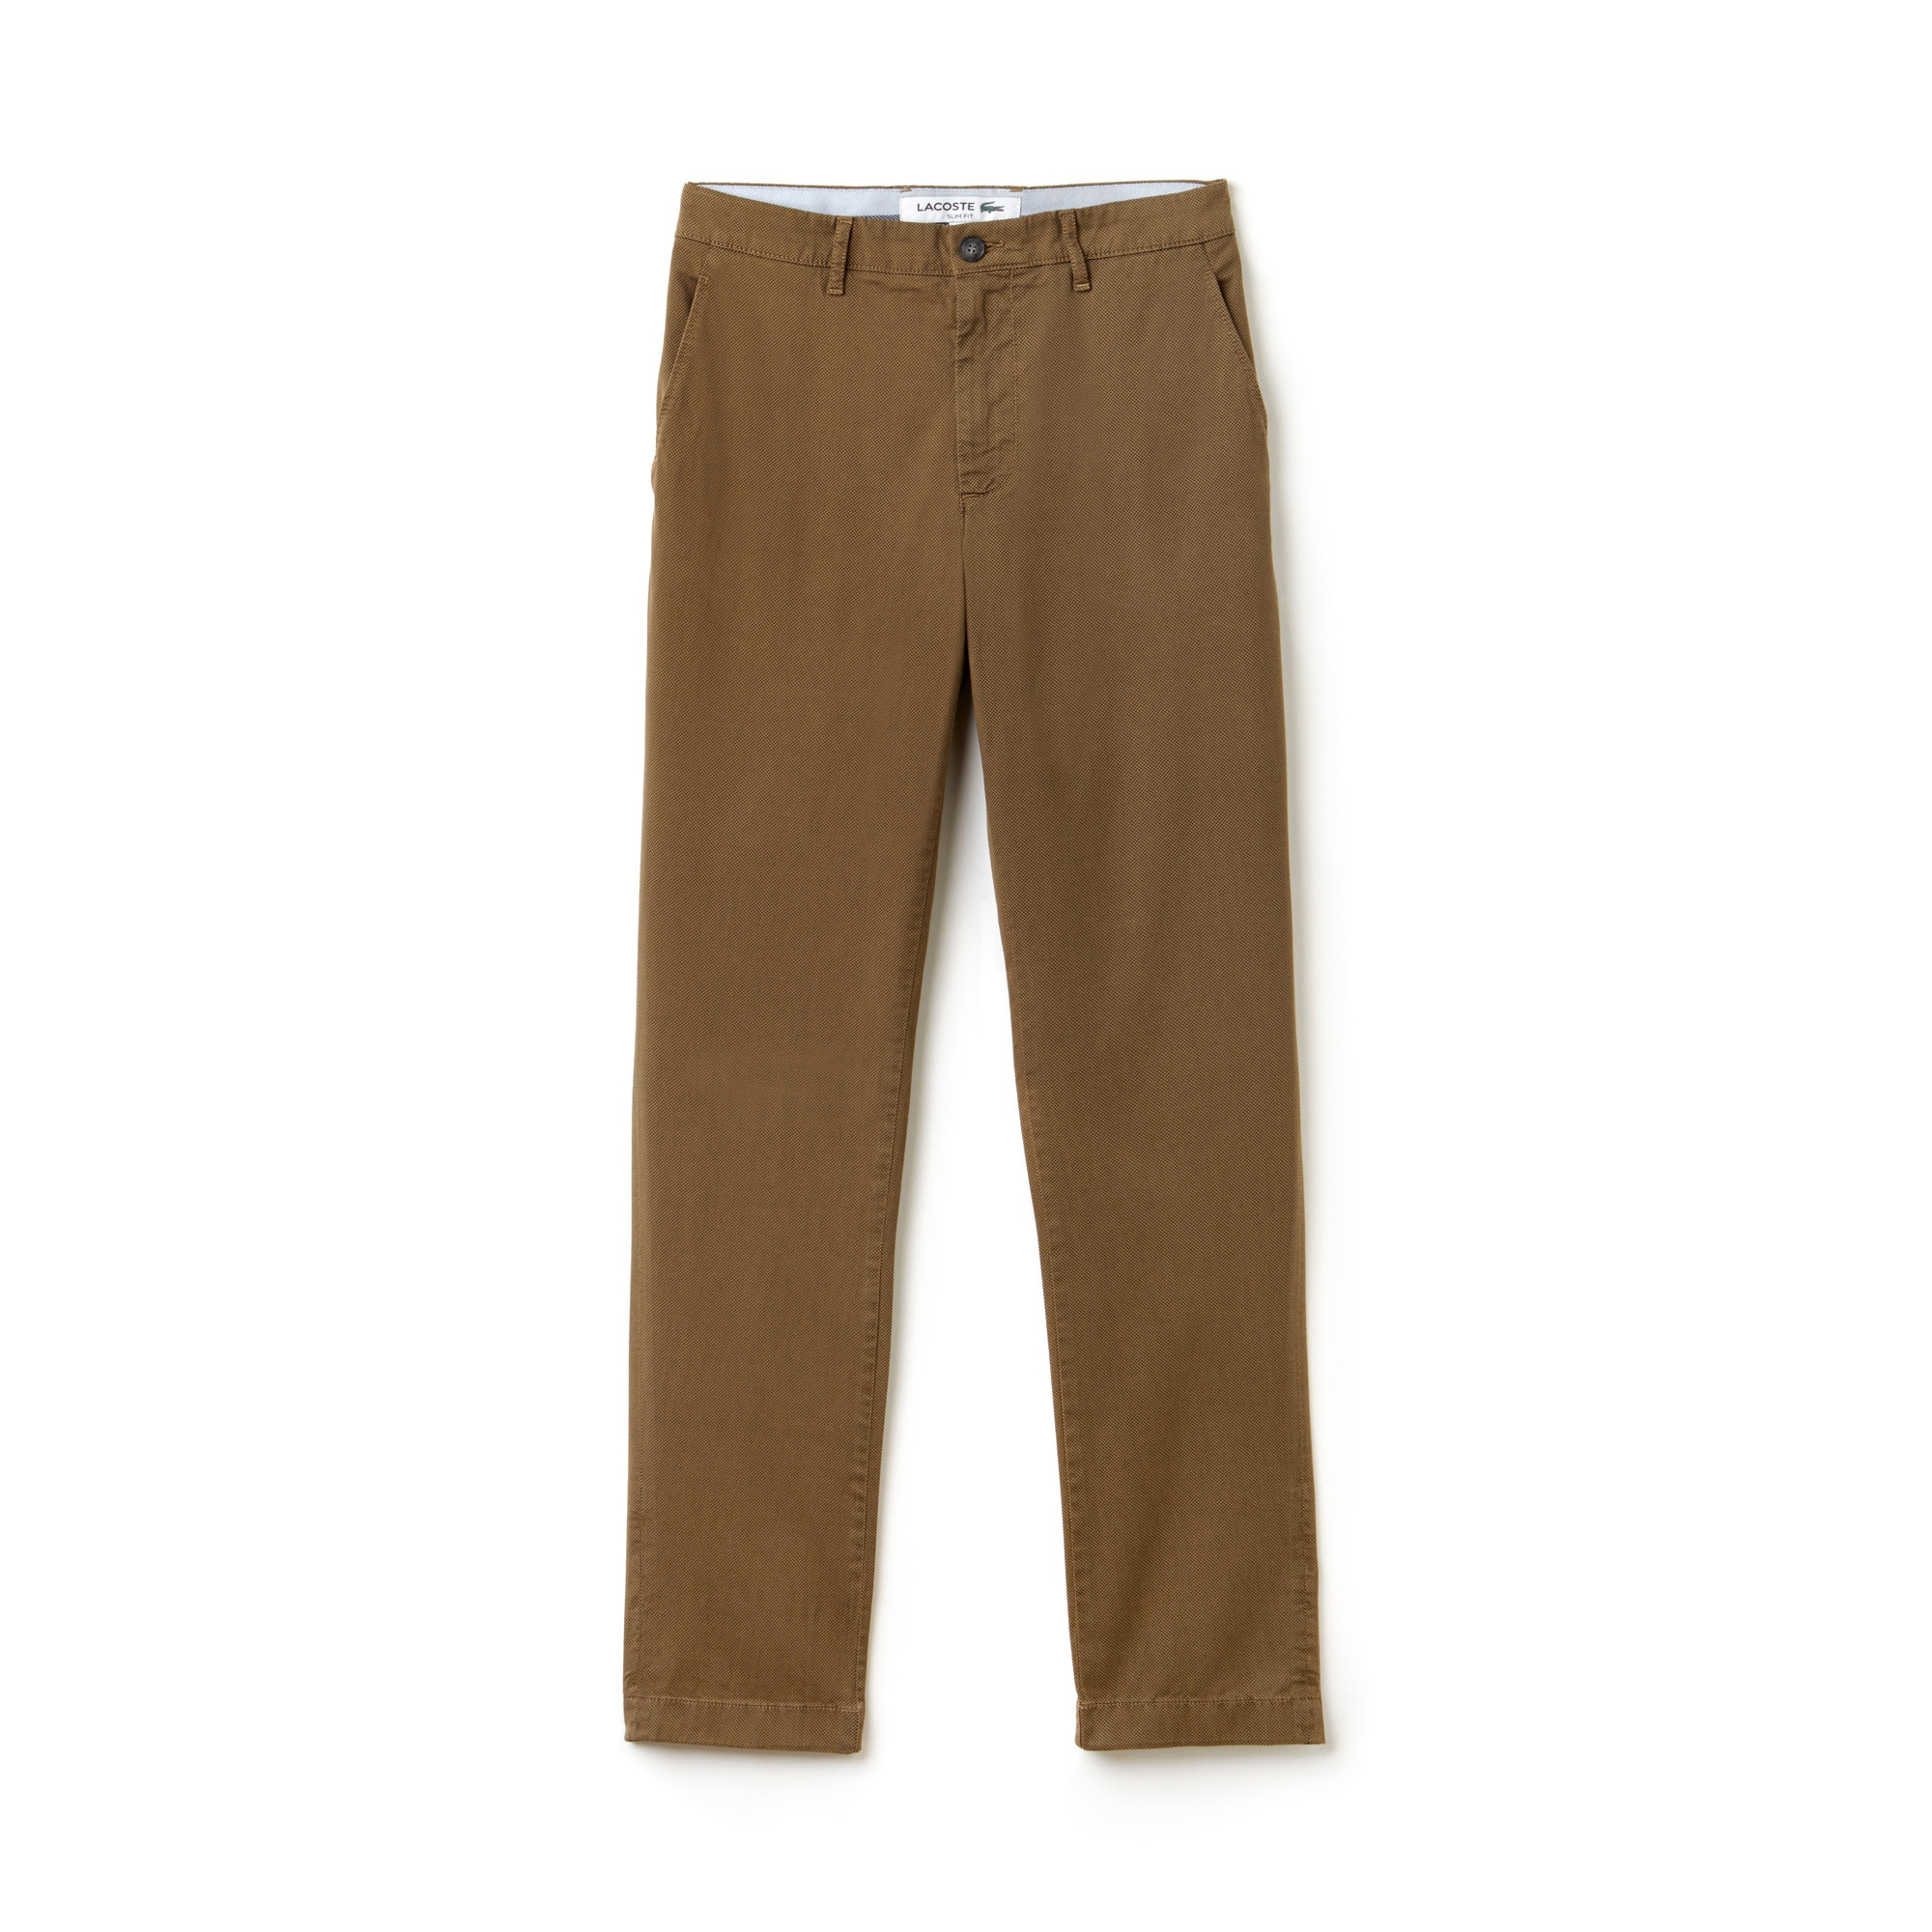 Men's Slim Fit Print Stretch Twill Chino Pants